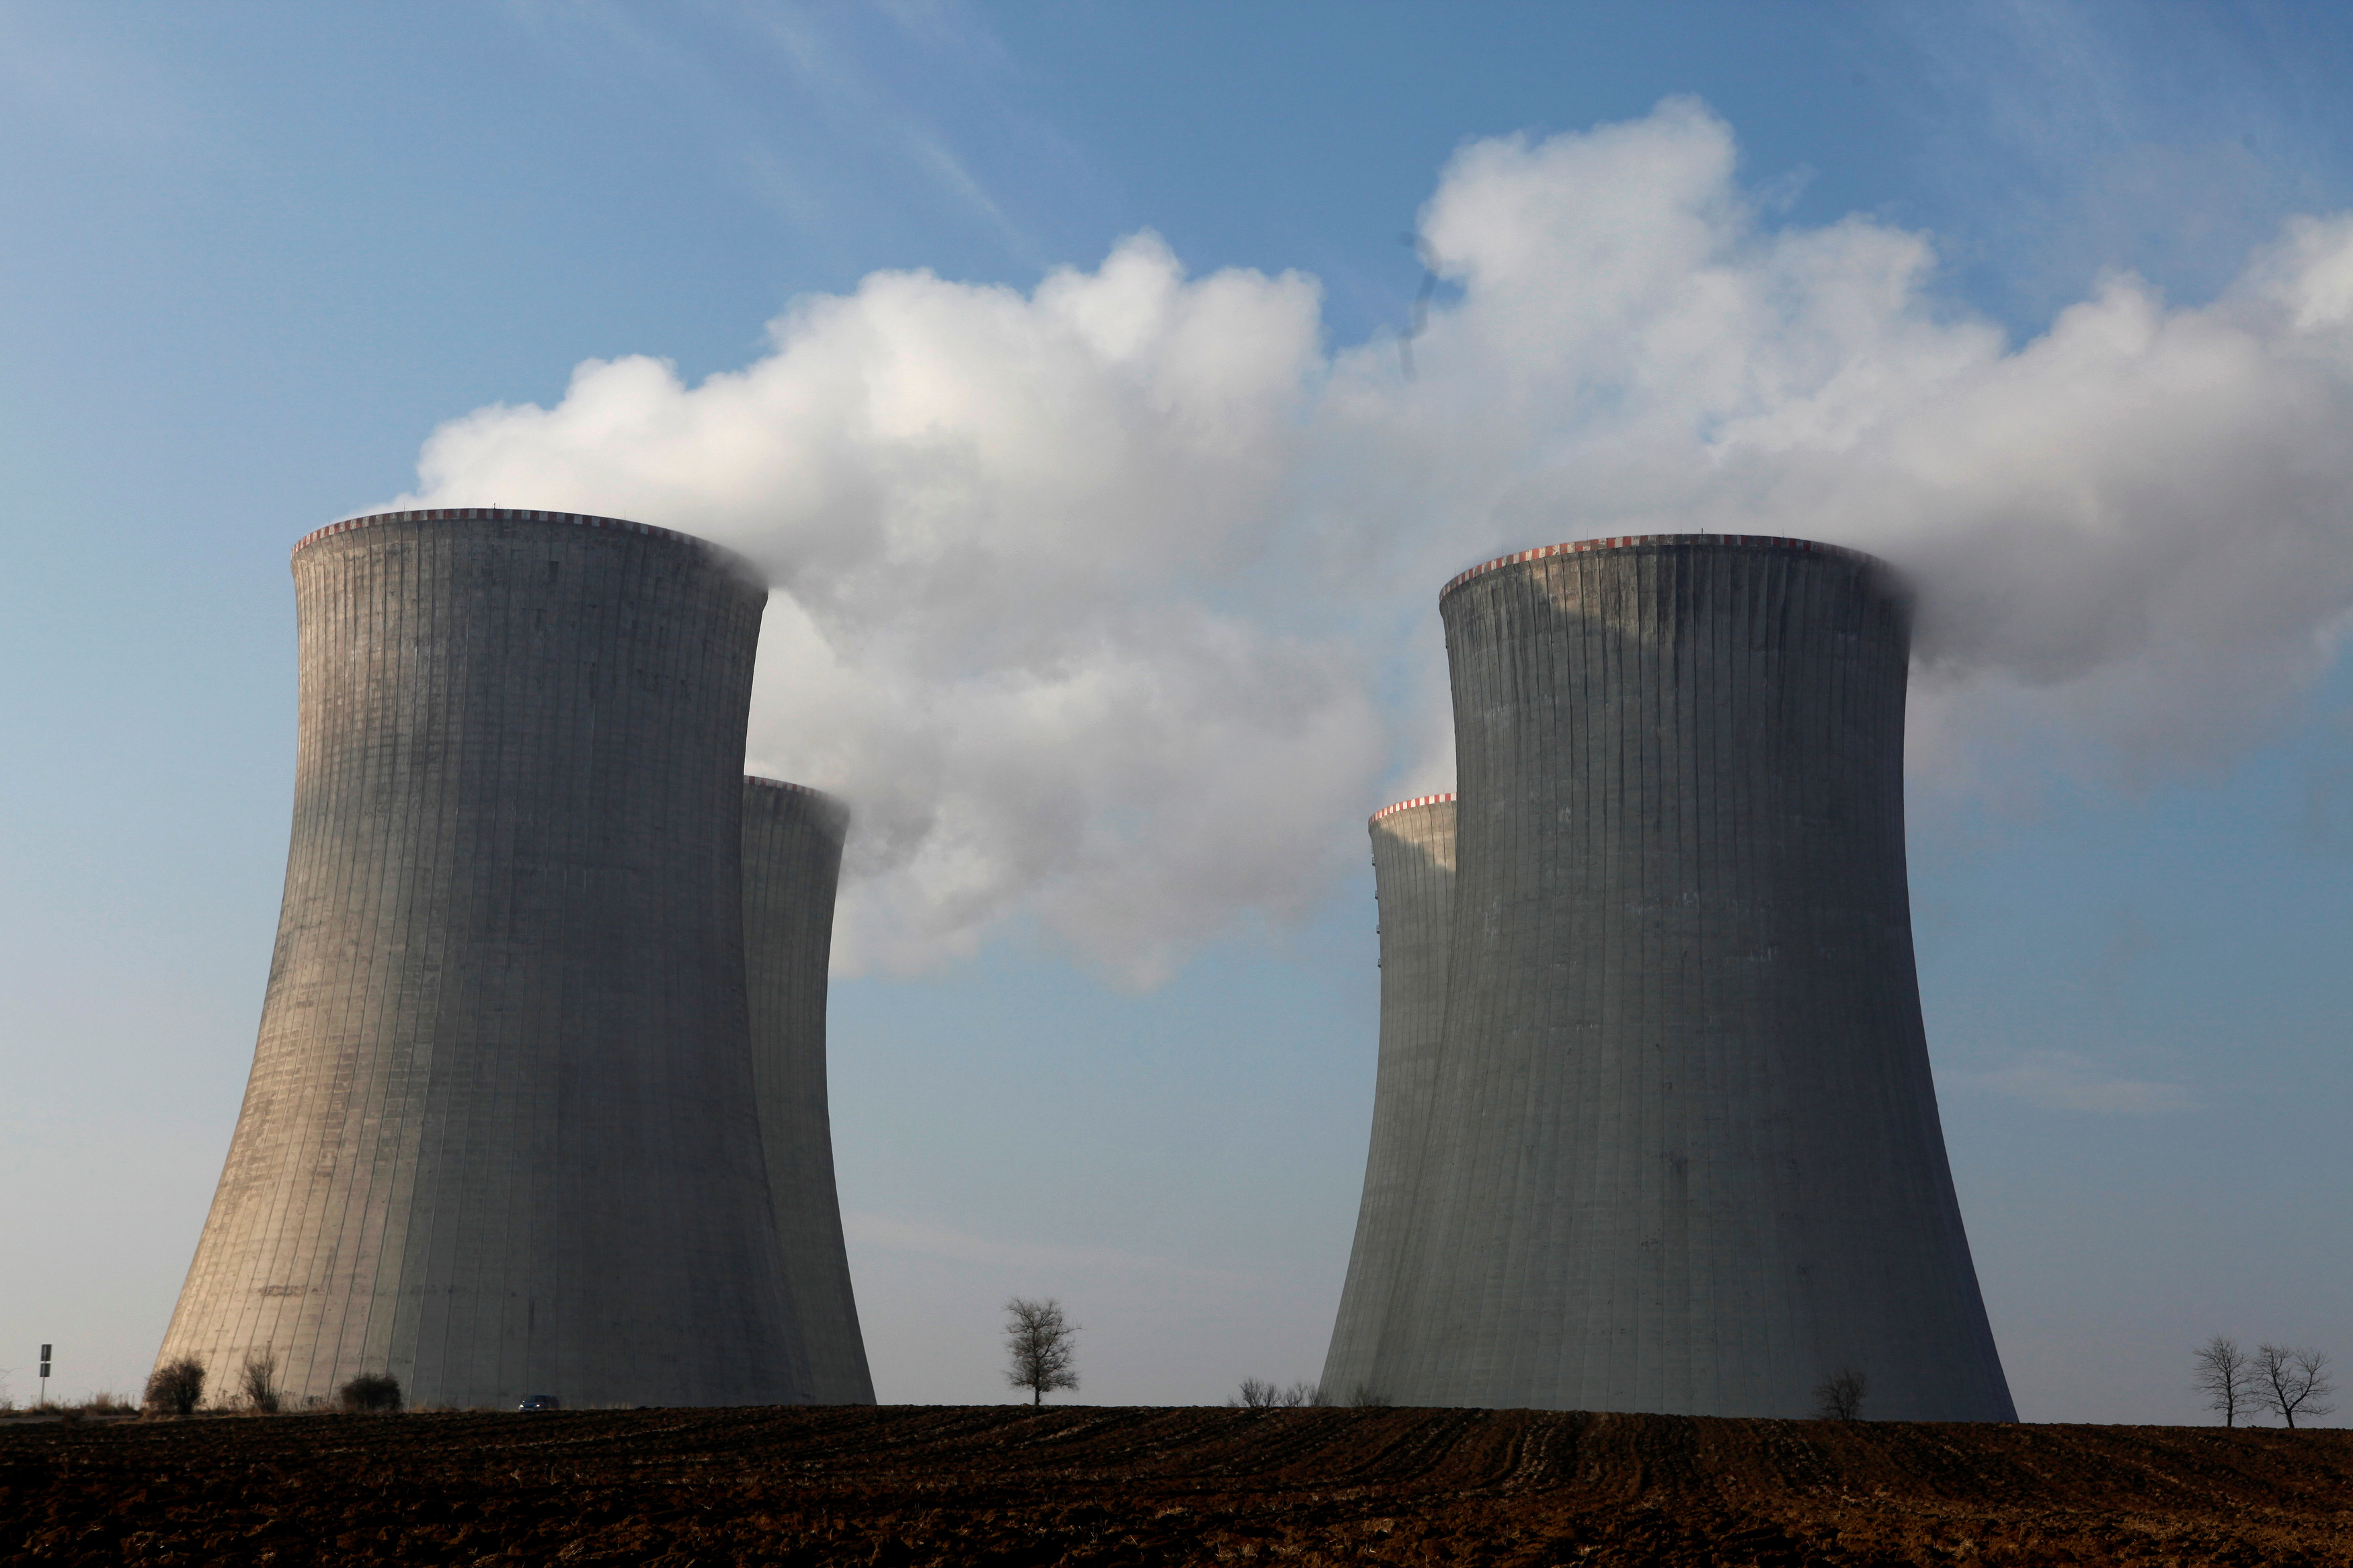 The cooling towers of the Czech nuclear power plant are seen at Dukovany, 125 miles (200 kilometers) east from Prague, March 15, 2011.  REUTERS/Petr Josek/File Photo